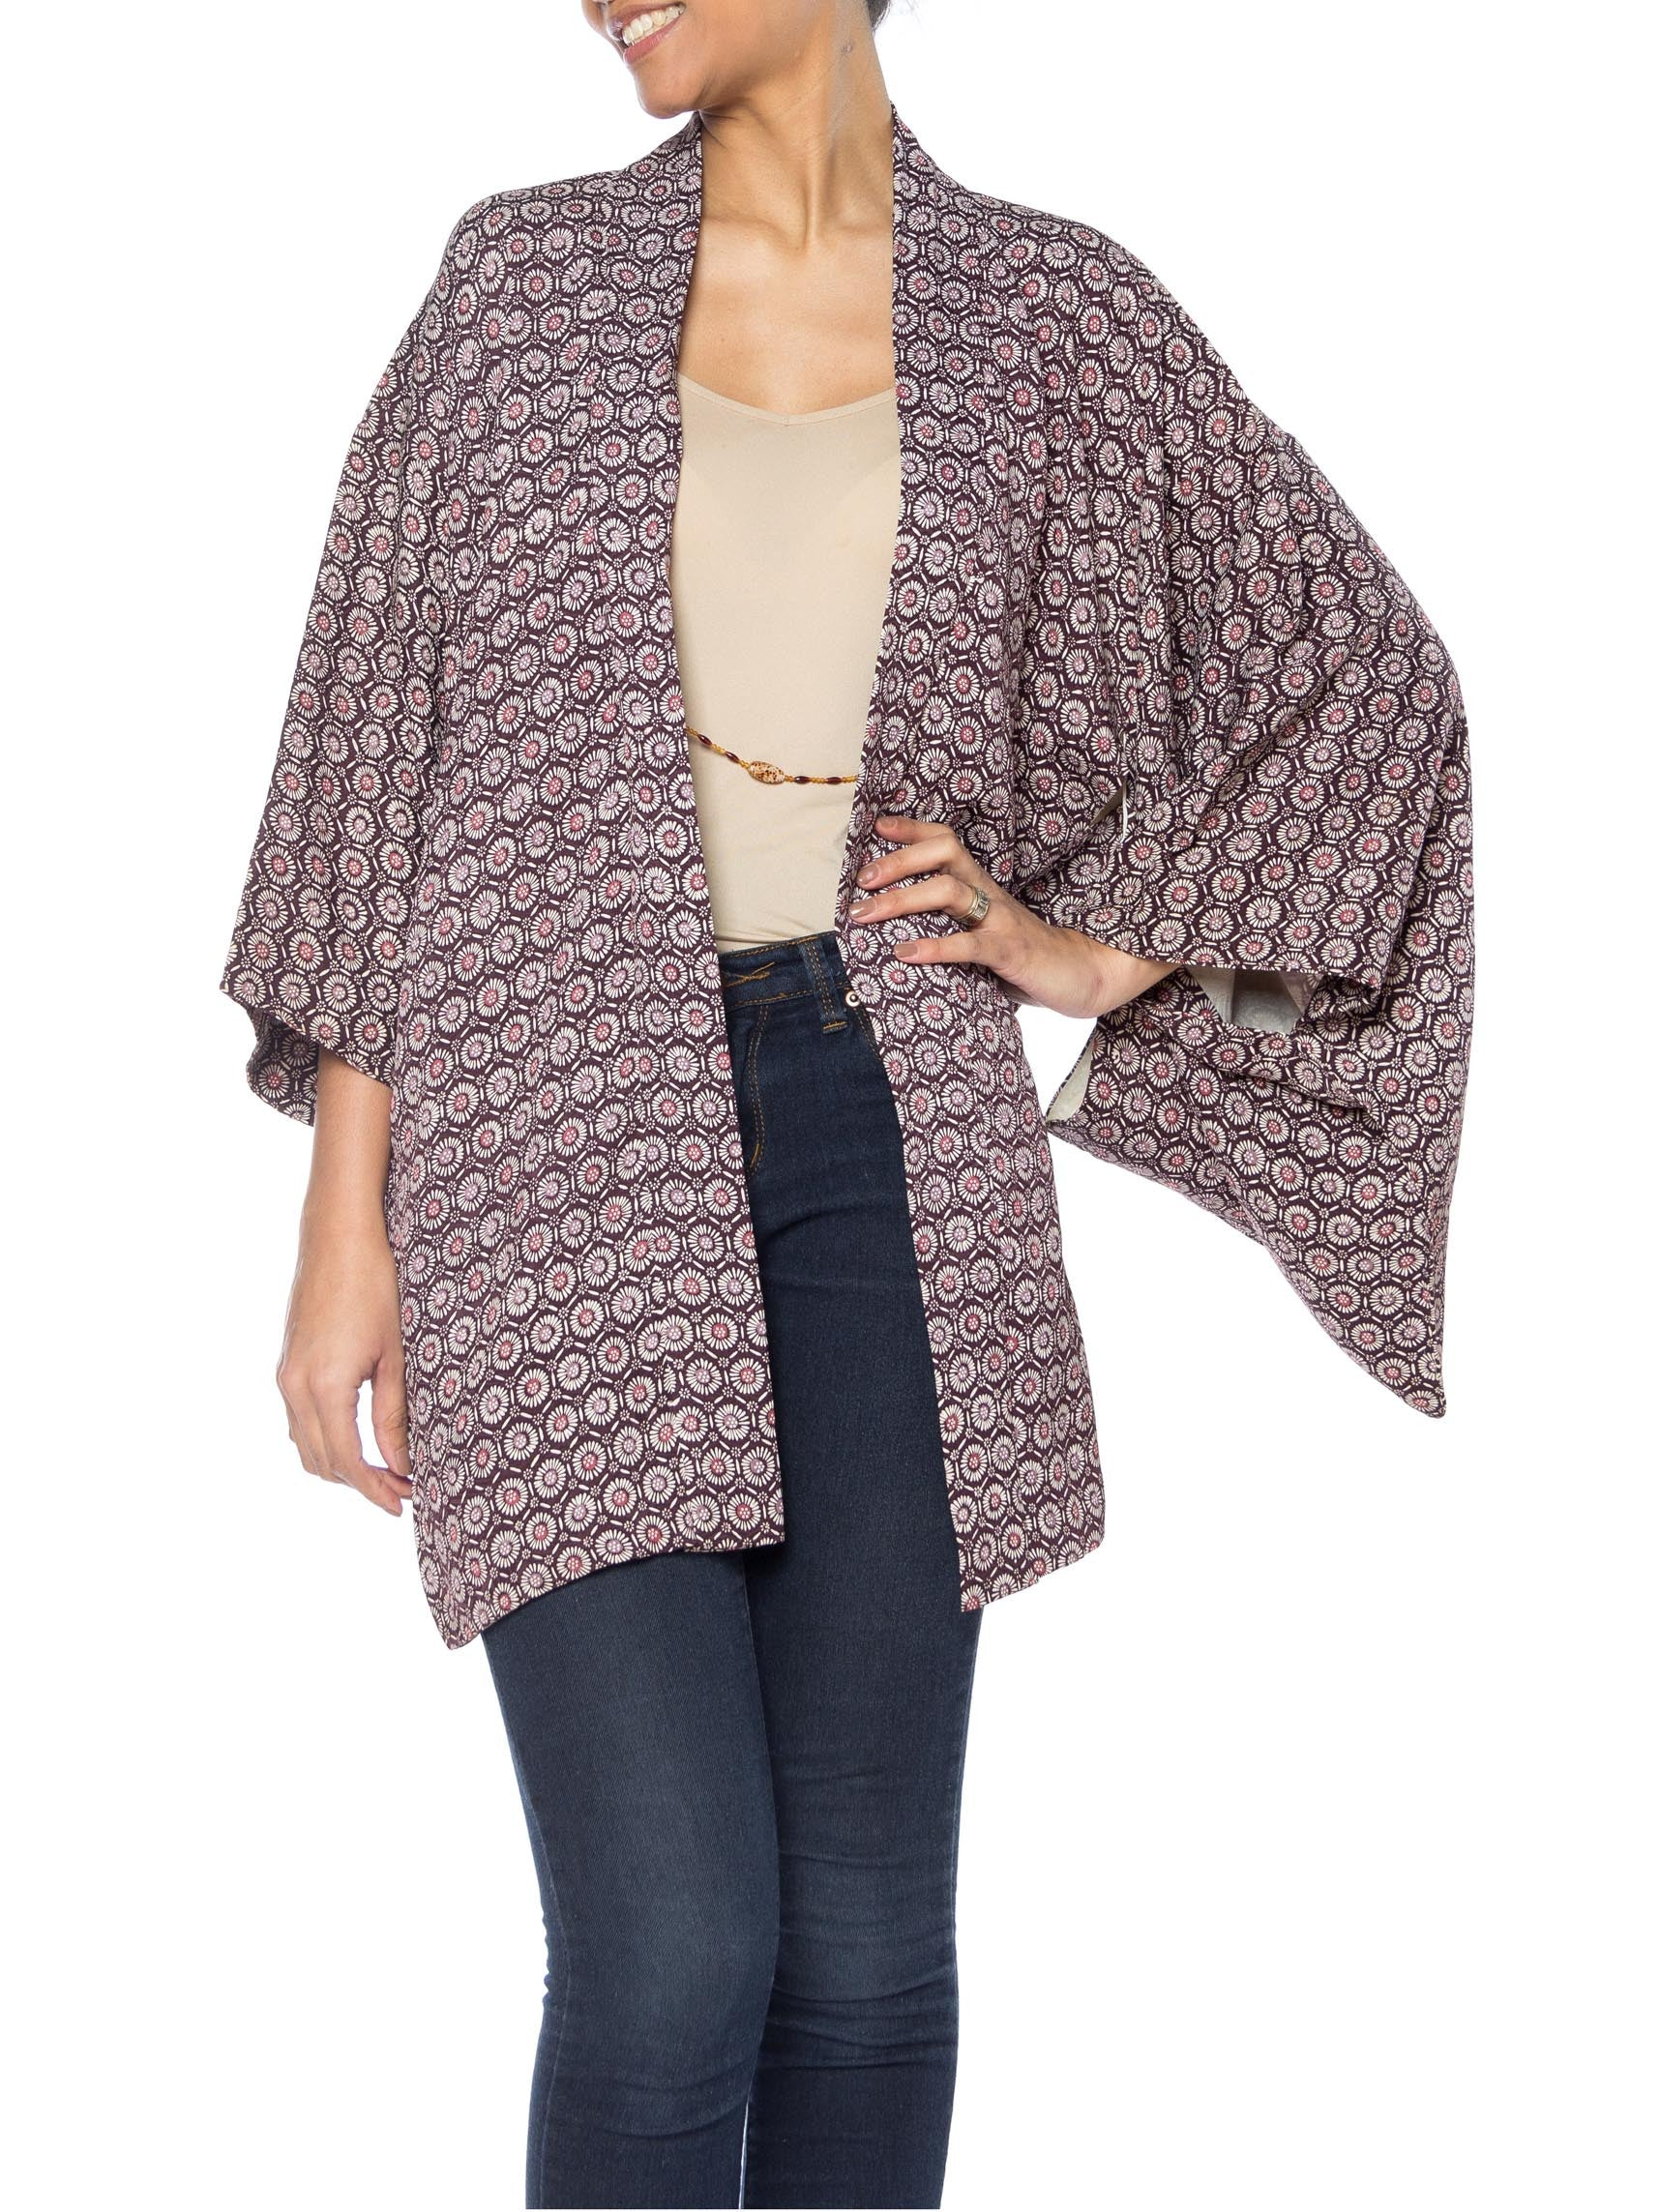 Purple and White Floral and Geometric Print Kimono